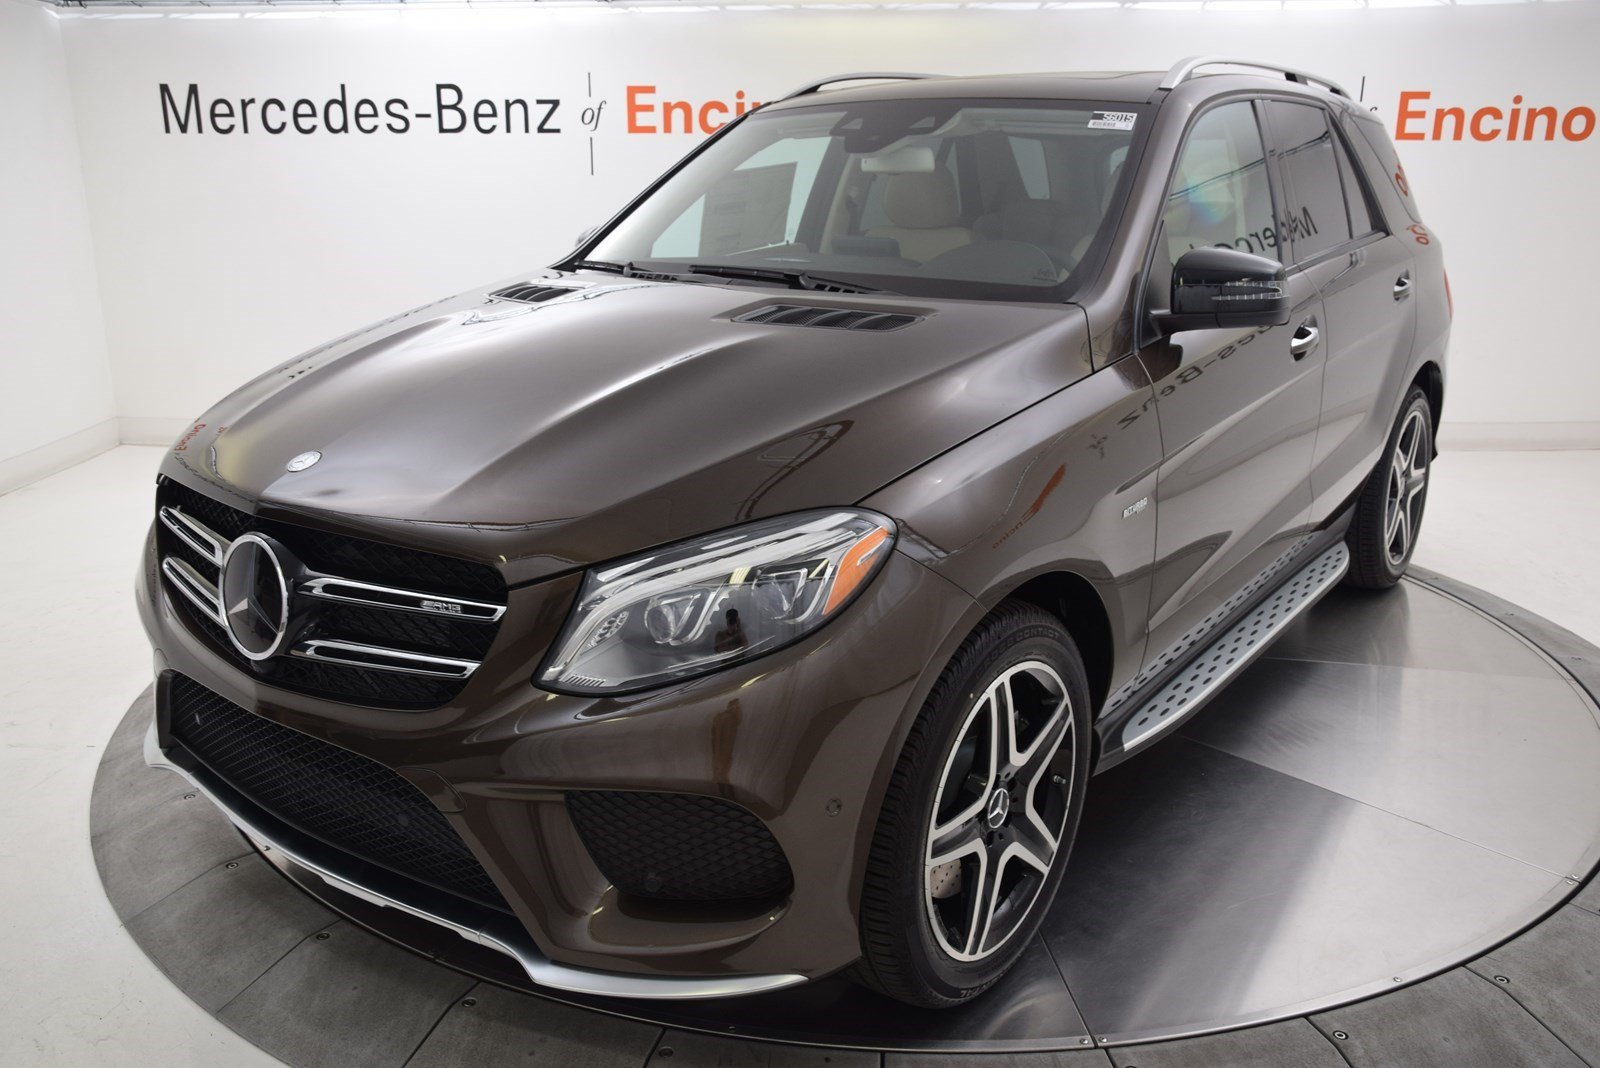 New 2017 Mercedes Benz Gle Amg Gle 43 Suv Suv In Encino 56015